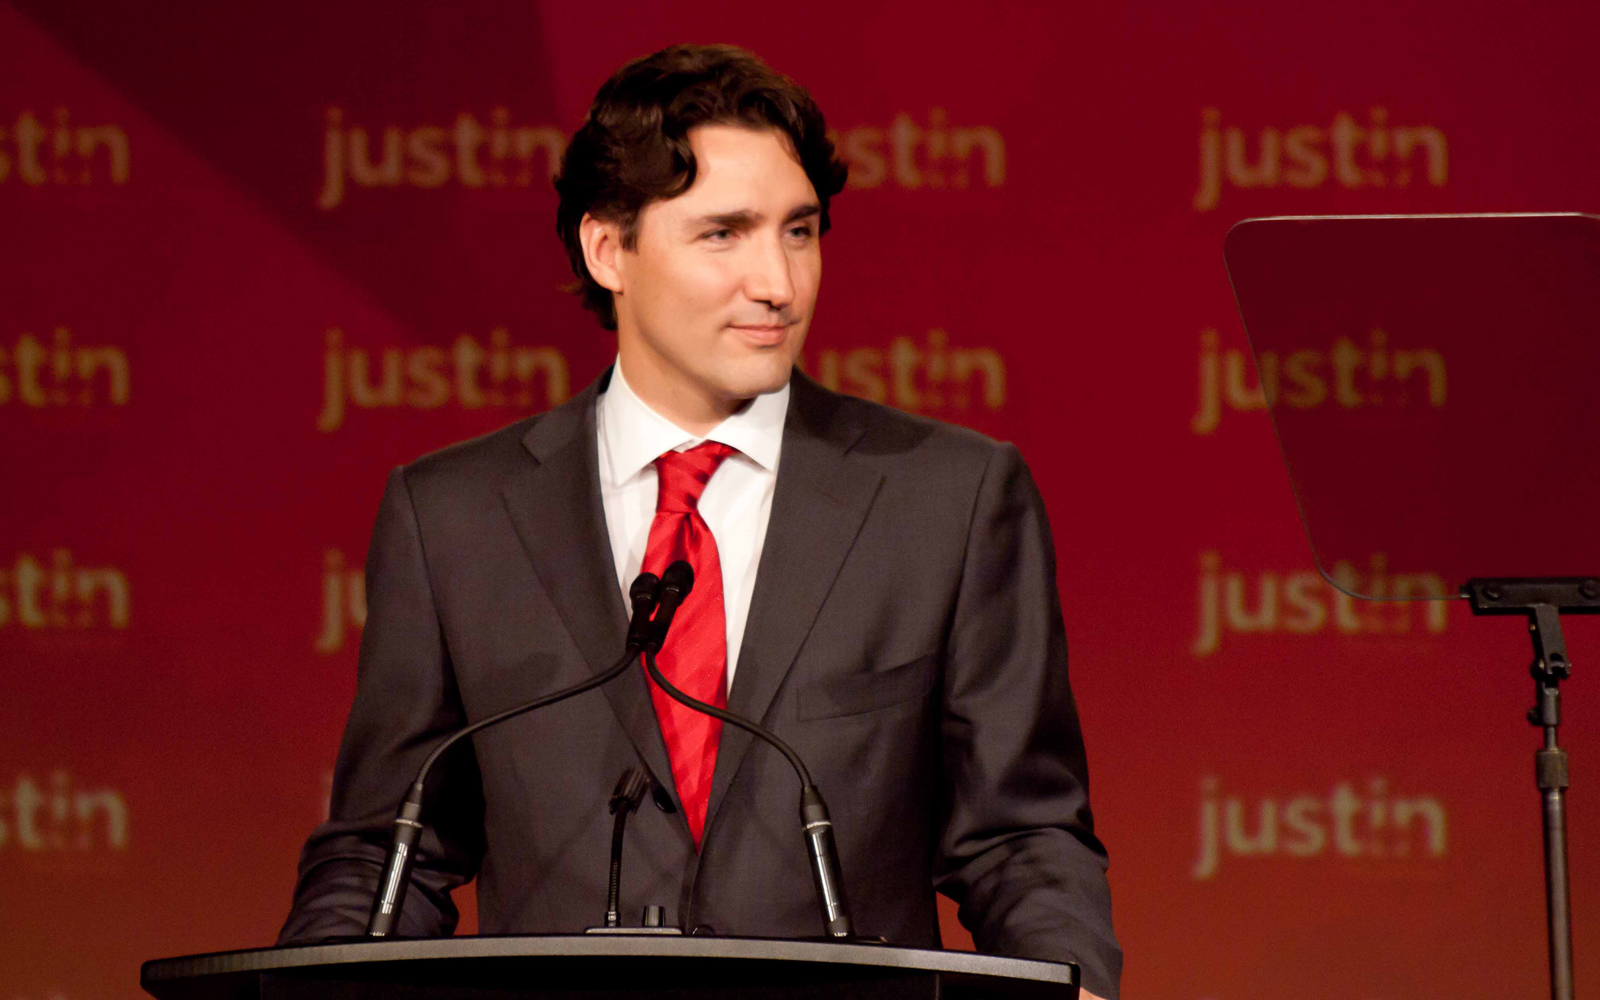 Justin Trudeau Can Now Be Yours — With Just 3 Easy Payments of $32.27